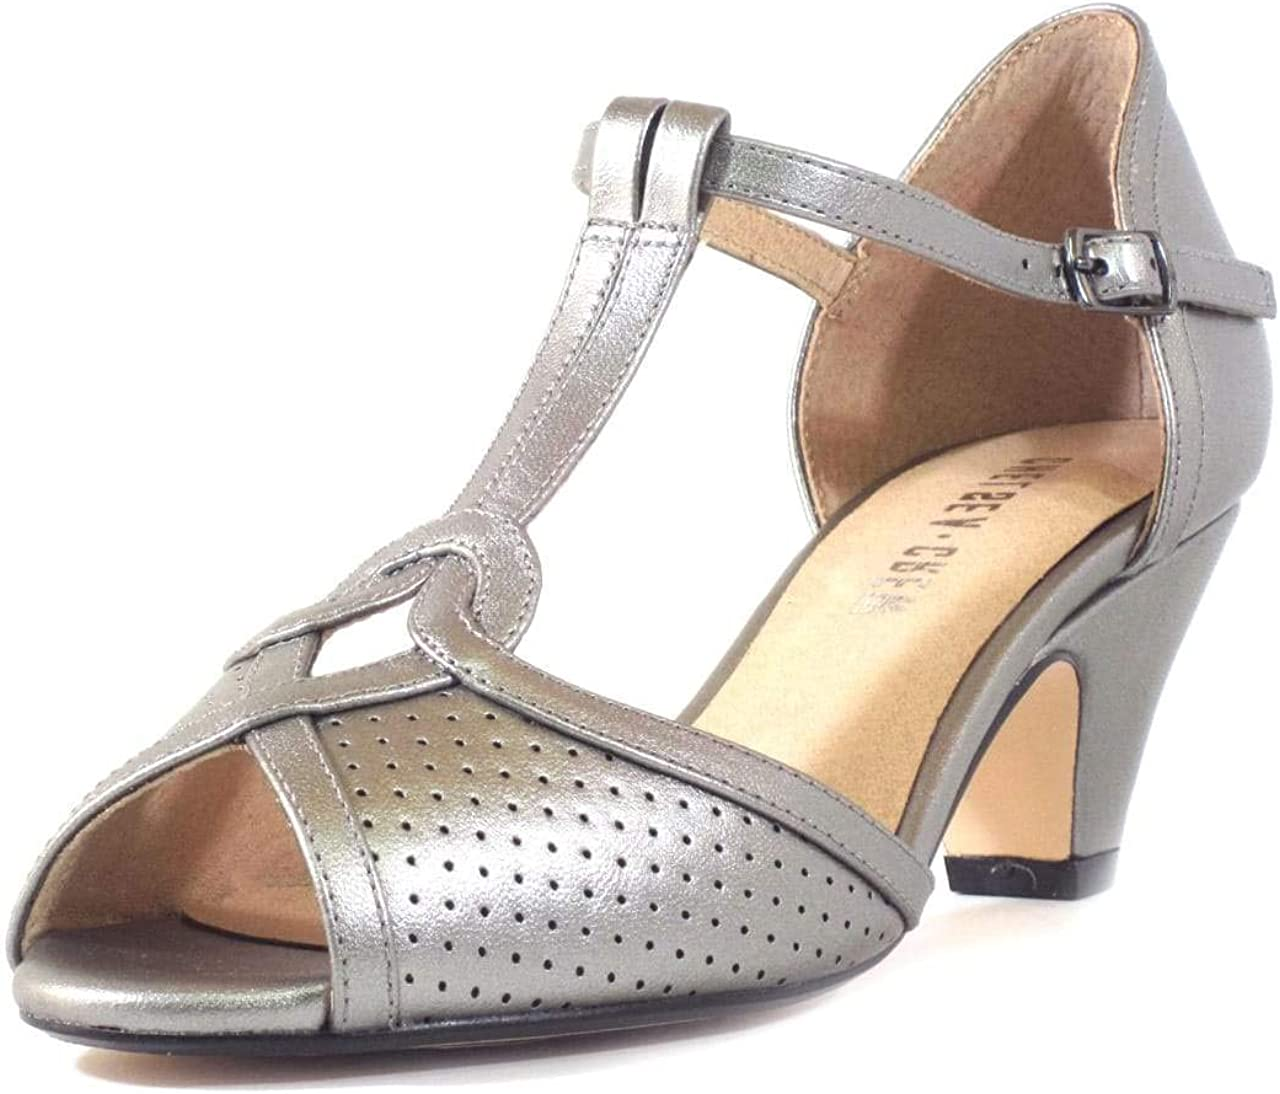 1950s Style Clothing & Fashion Chelsea Crew Nancy Womens T-Strap Heels  AT vintagedancer.com